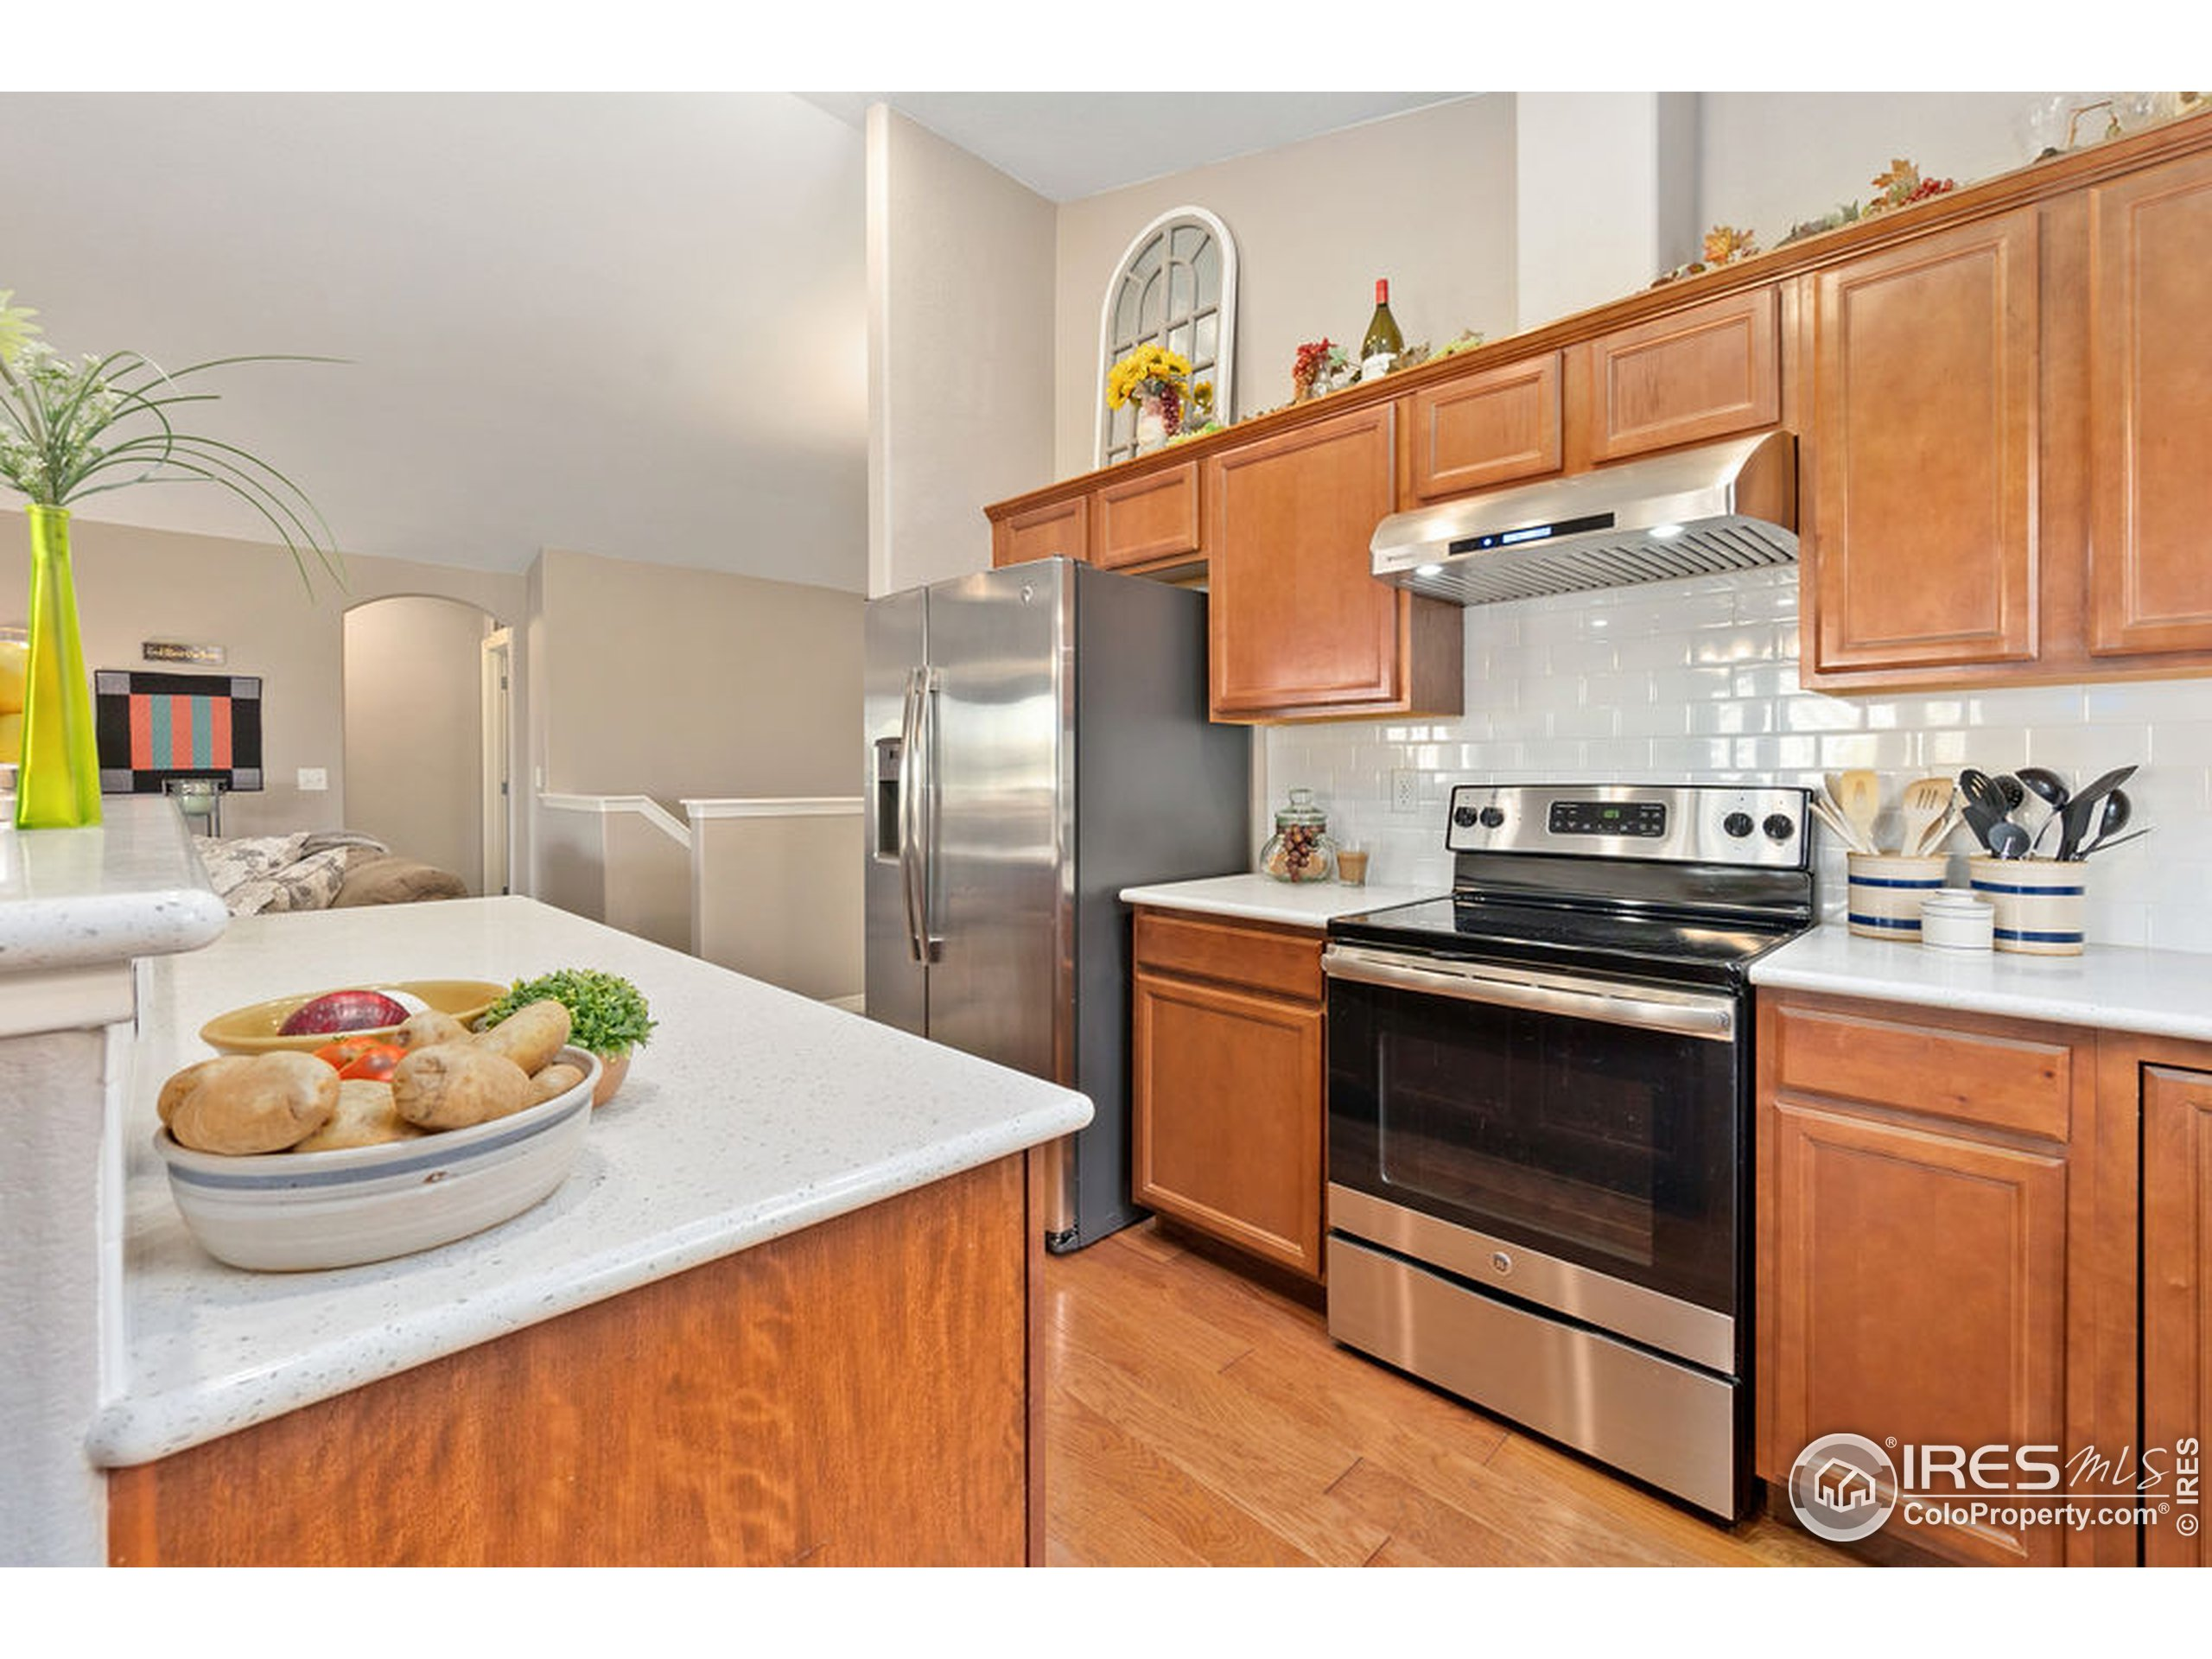 All stainless steel appliances included. Above stove is Xtremeair Vent Hood